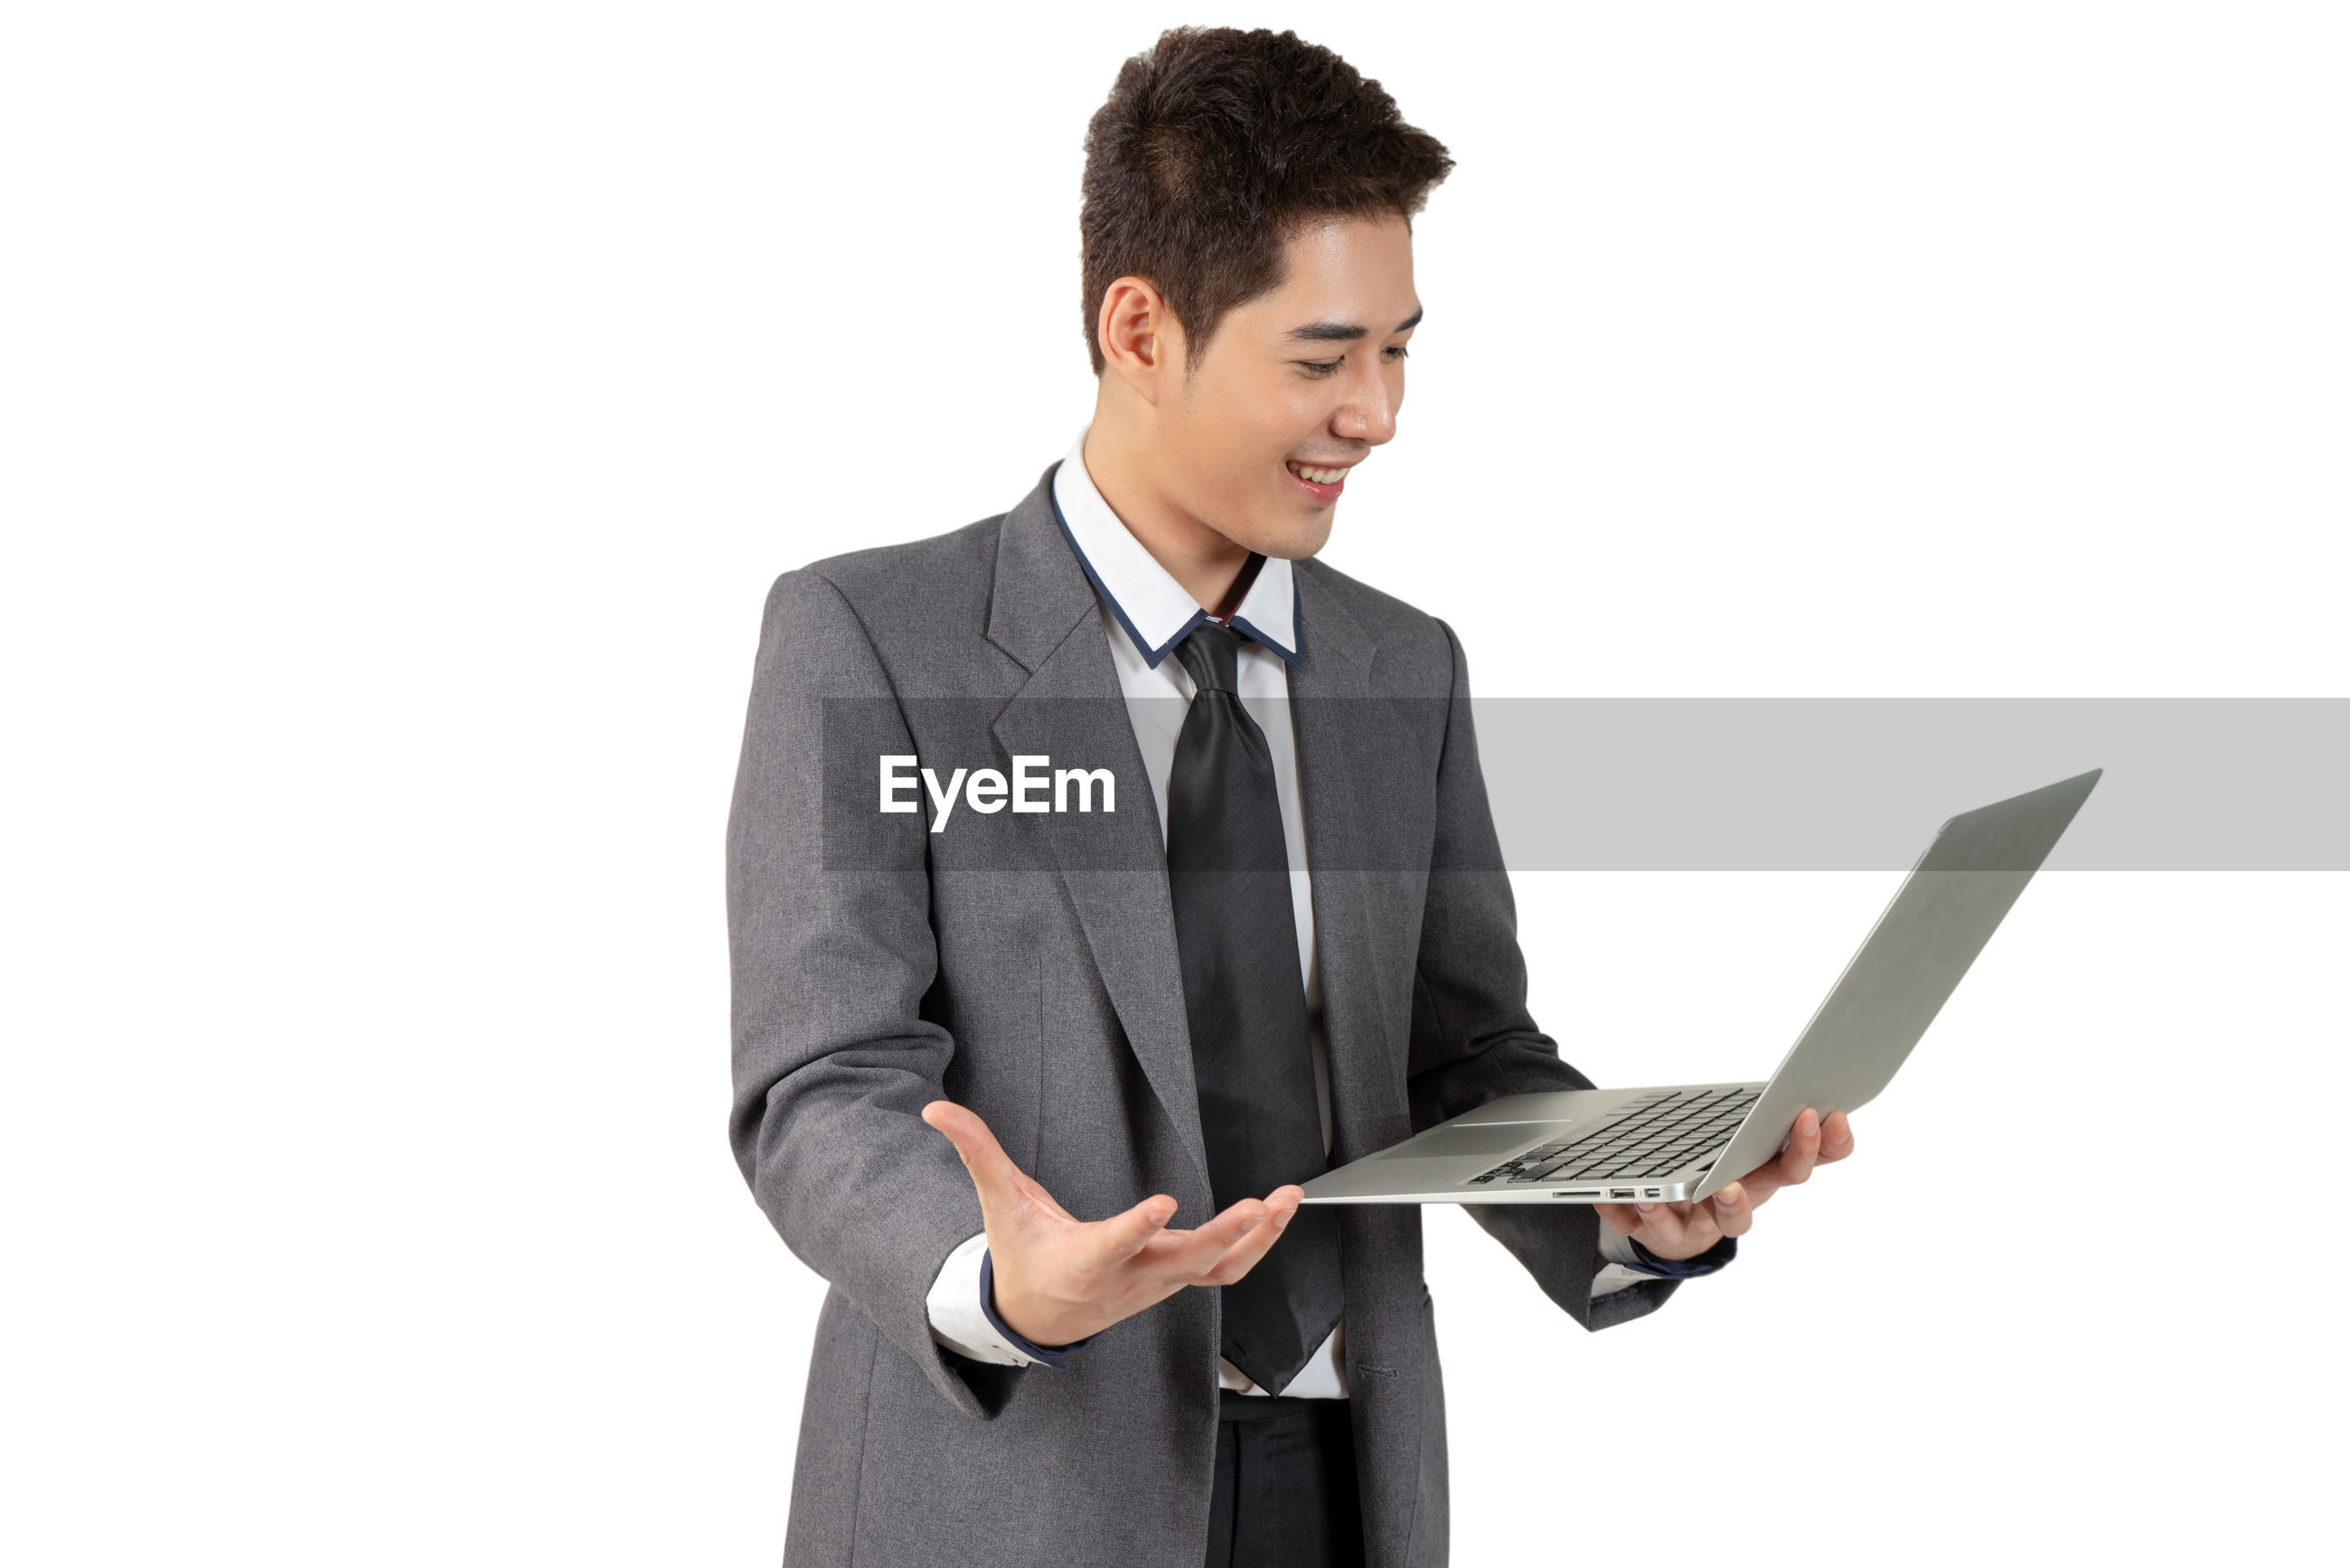 Smiling young businessman holding laptop against white background